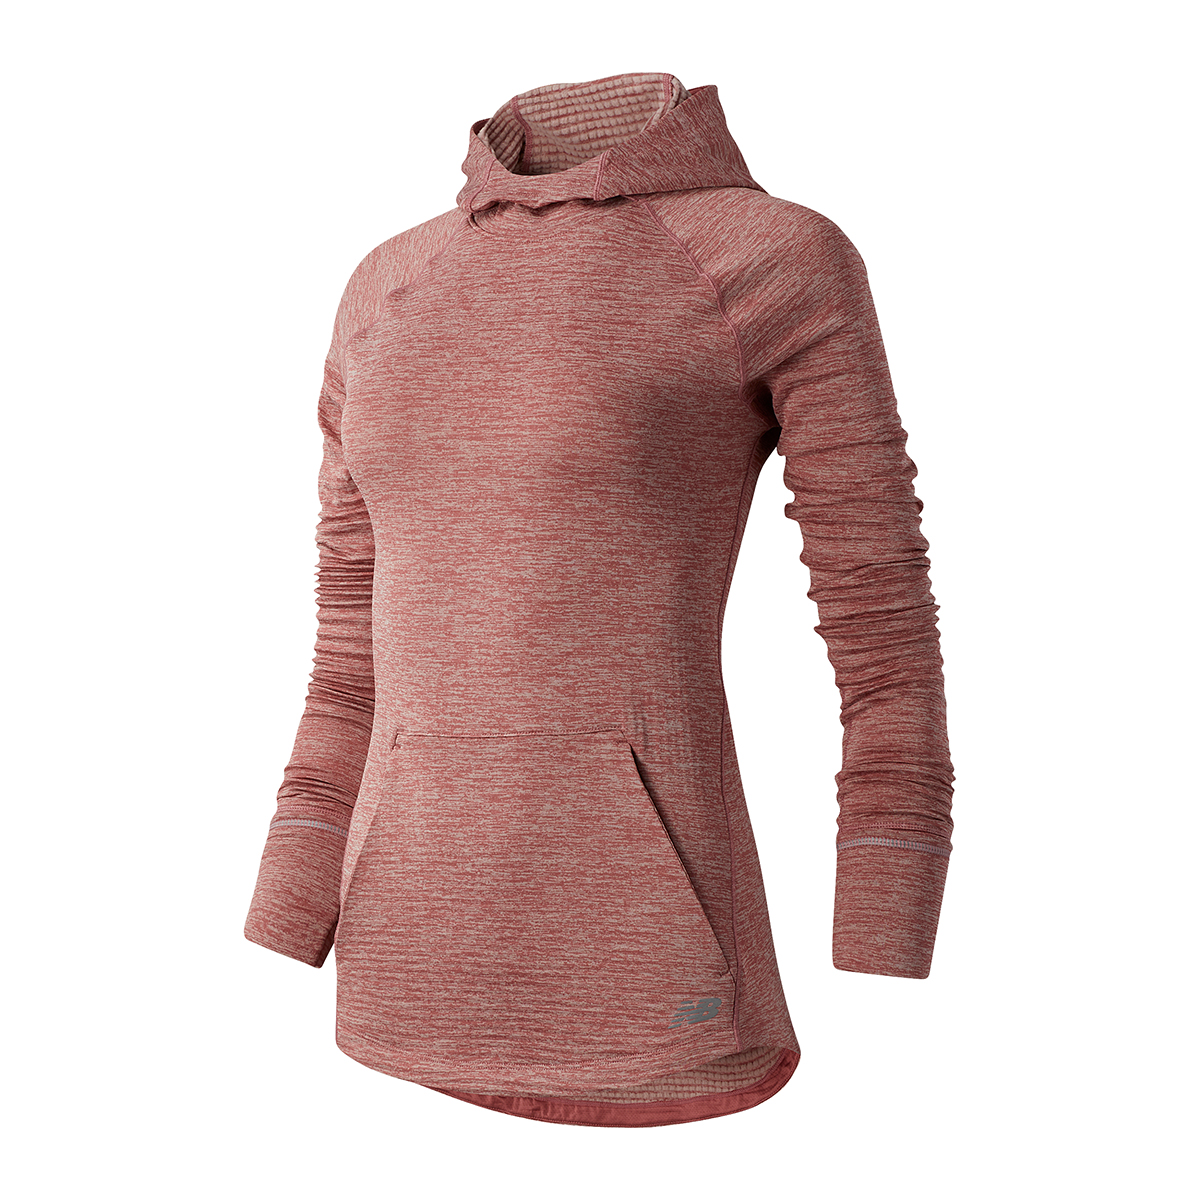 Women's New Balance Heat Grid Hoodie - Color: Pink - Size: XS, Pink, large, image 1